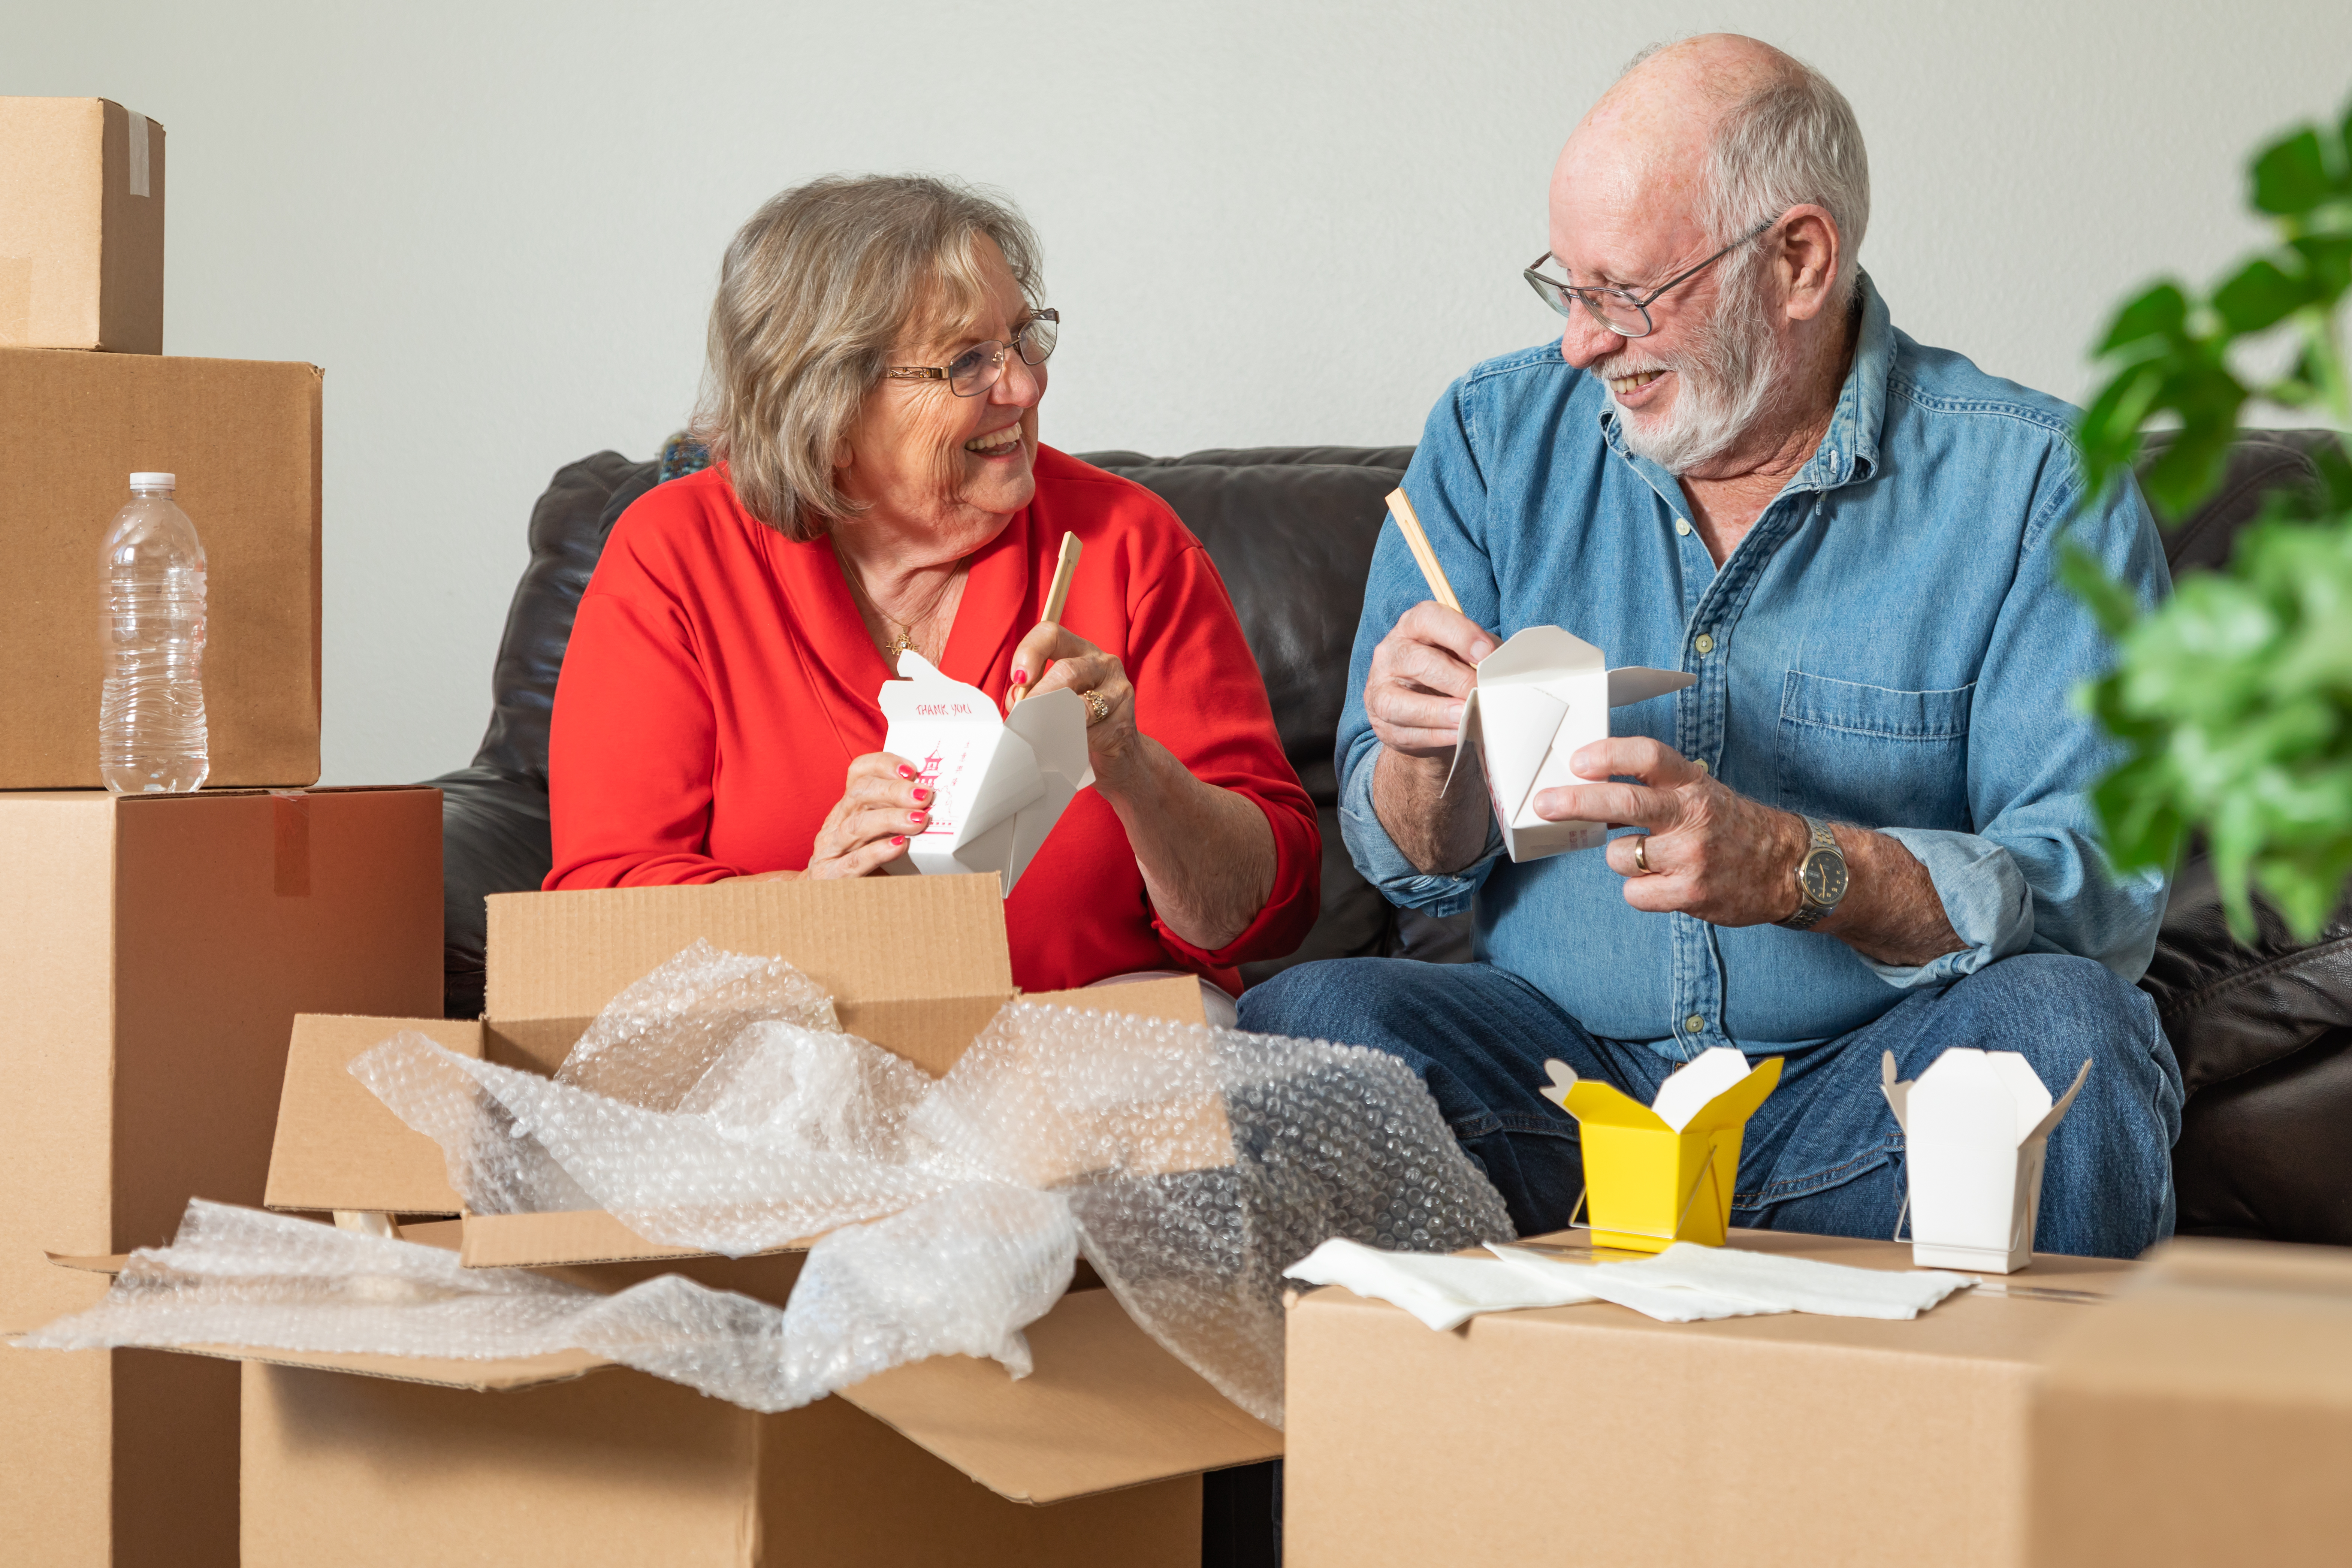 What it's Like to Downsize and Move to Senior Living - A Realtors Perspective